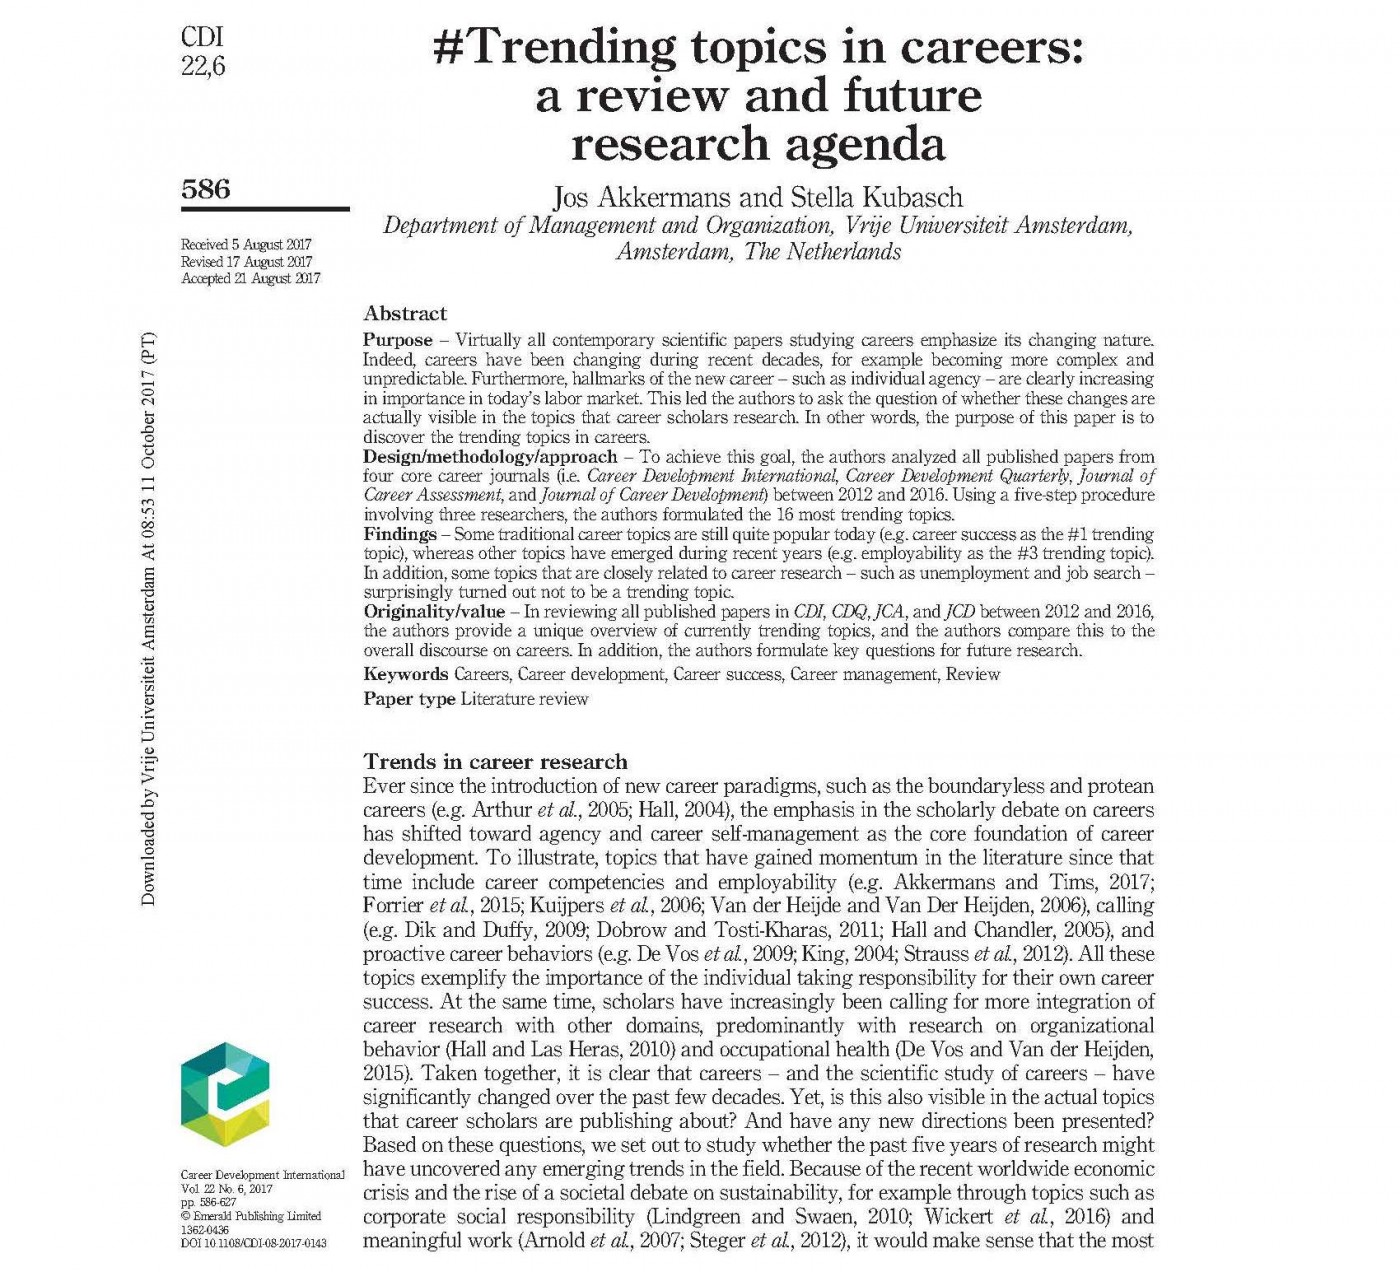 022 59e096d33a29650001209782 1620 20akkermans202620kubasch20201720 20trending20topics20in20careers Research Paper Topics For Impressive Papers 7th Grade Hot In Computer Science Biology High School Students 1400